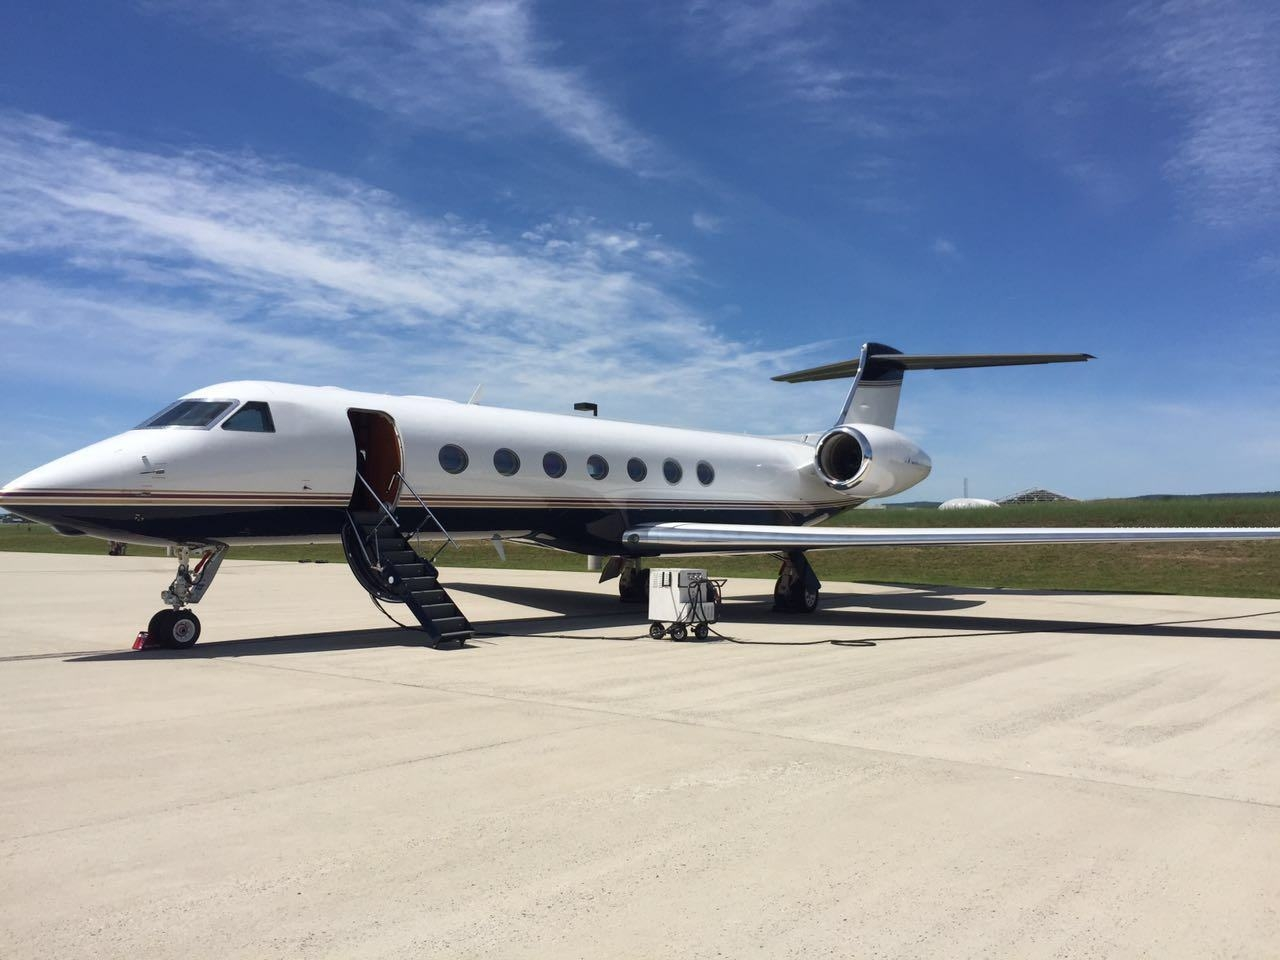 HK Bellawings manages one more Gulfstream G550